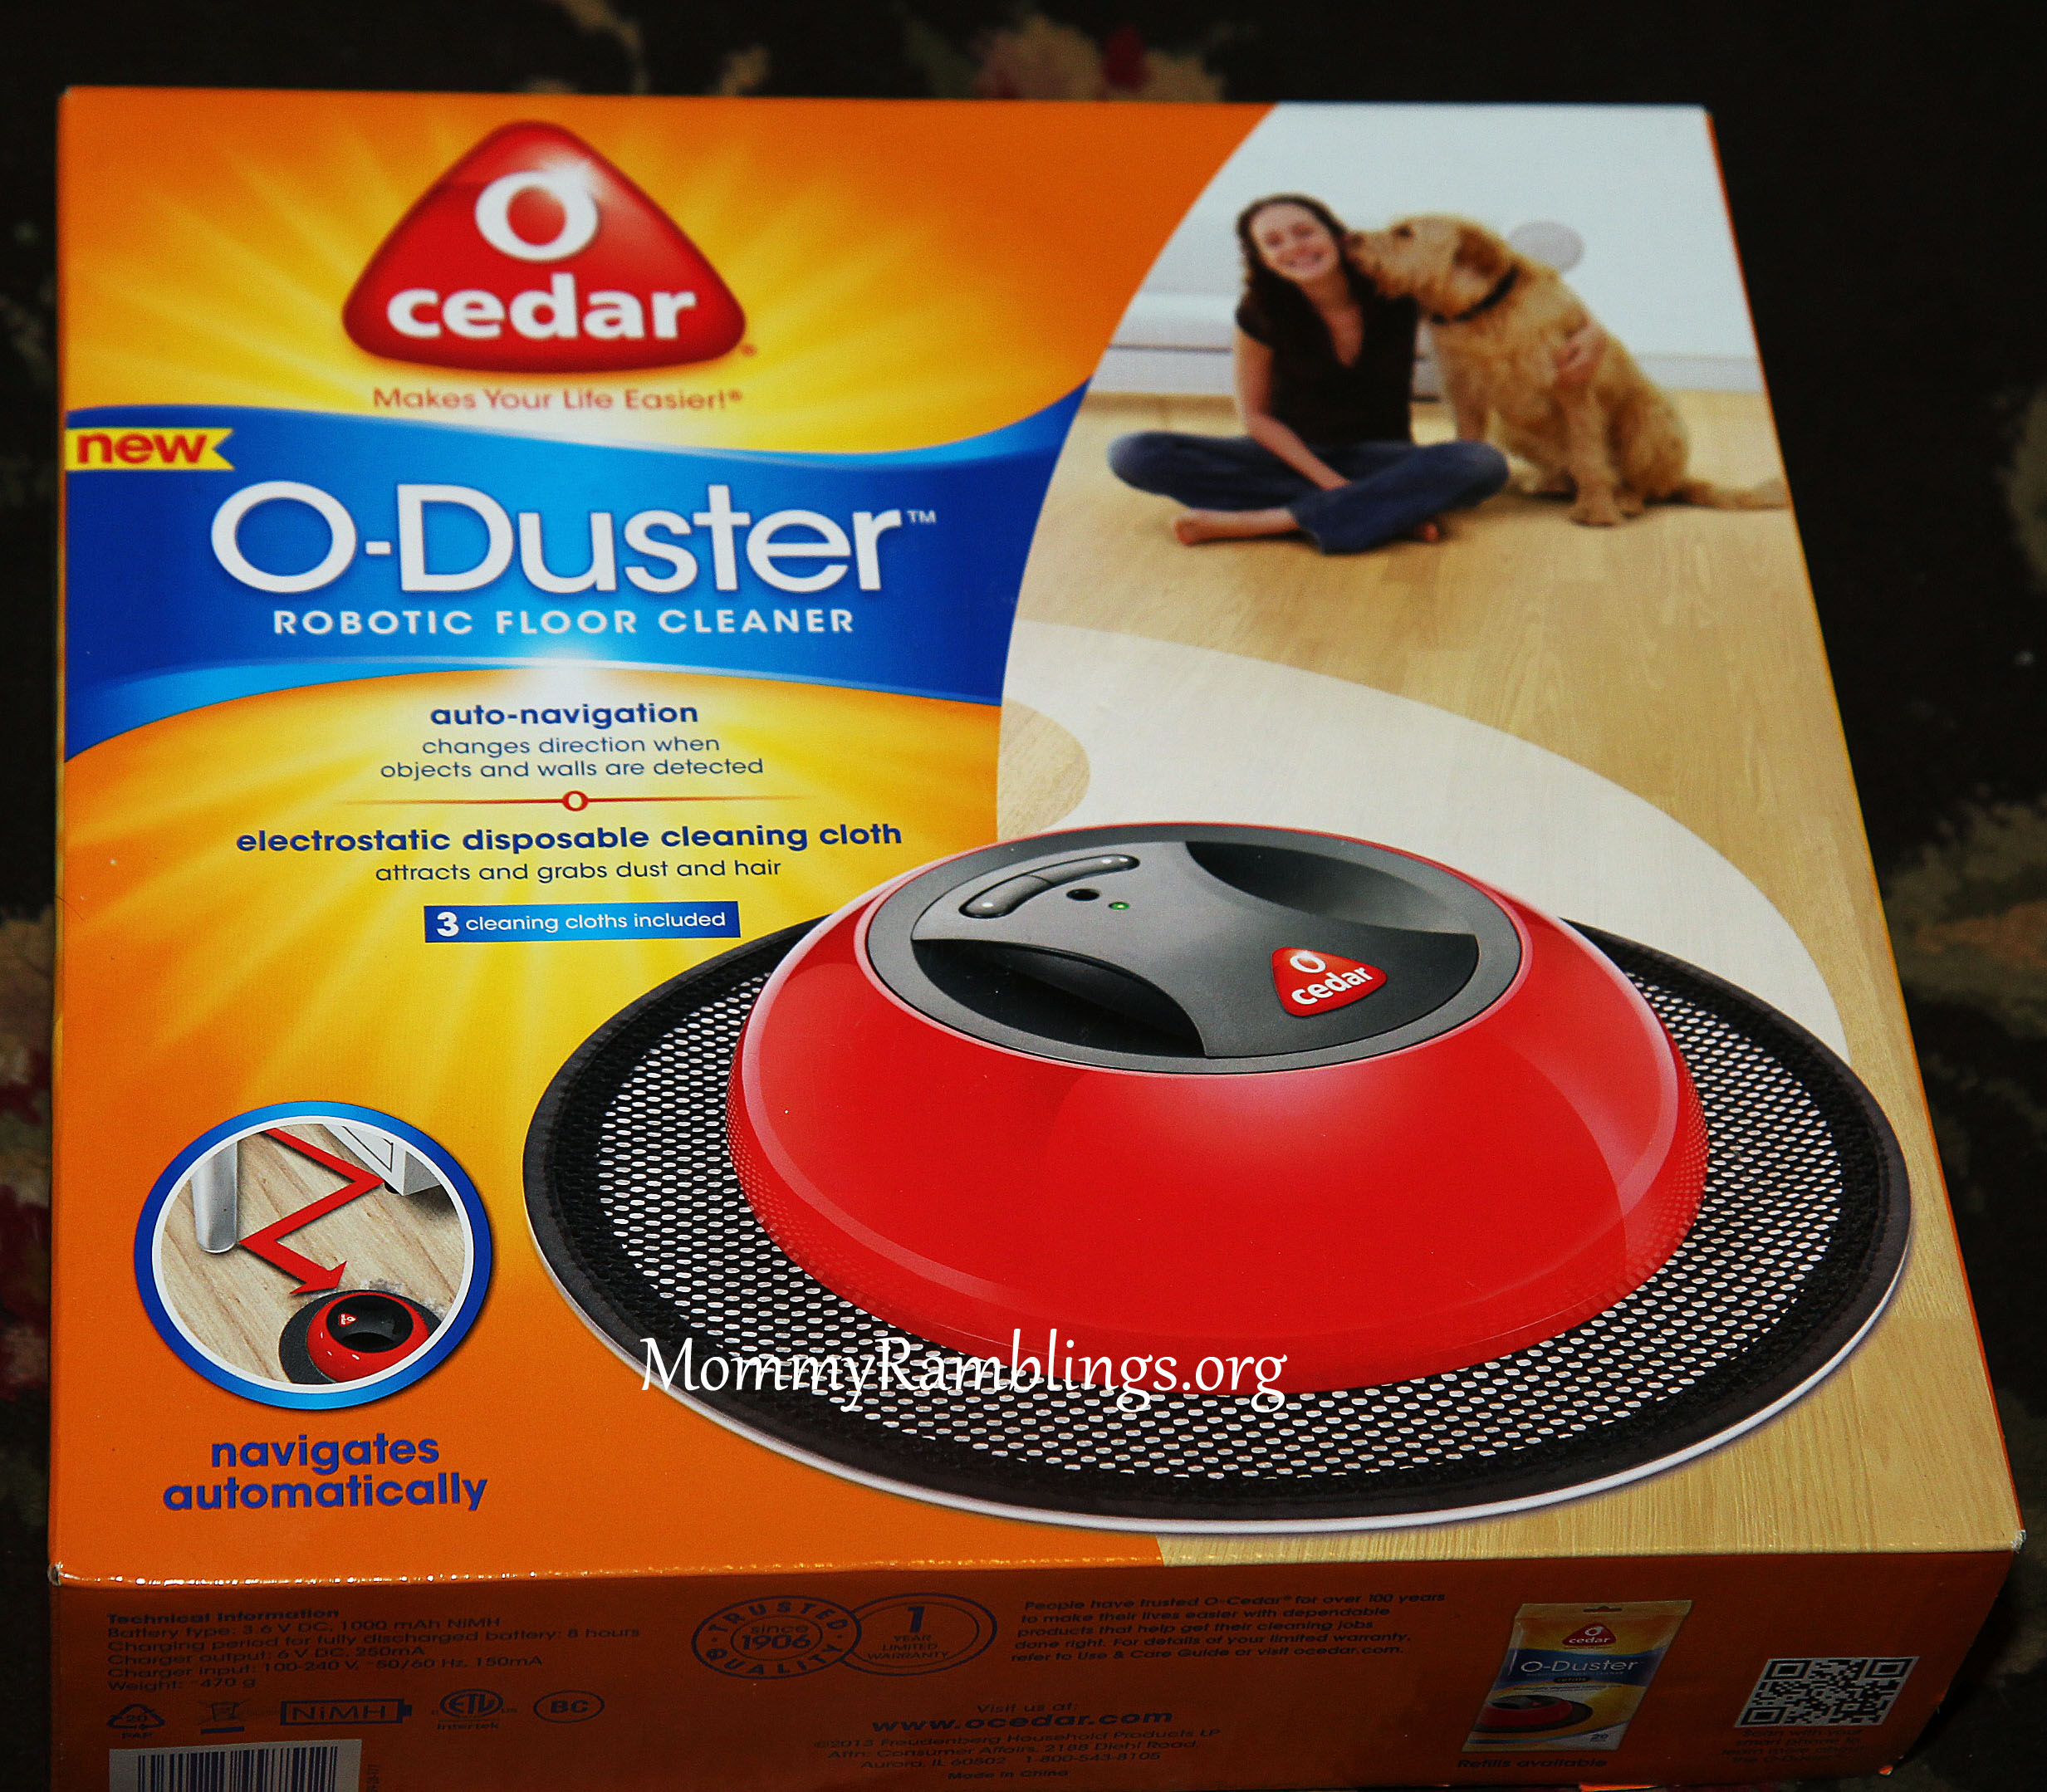 o-duster archives • mommy ramblings